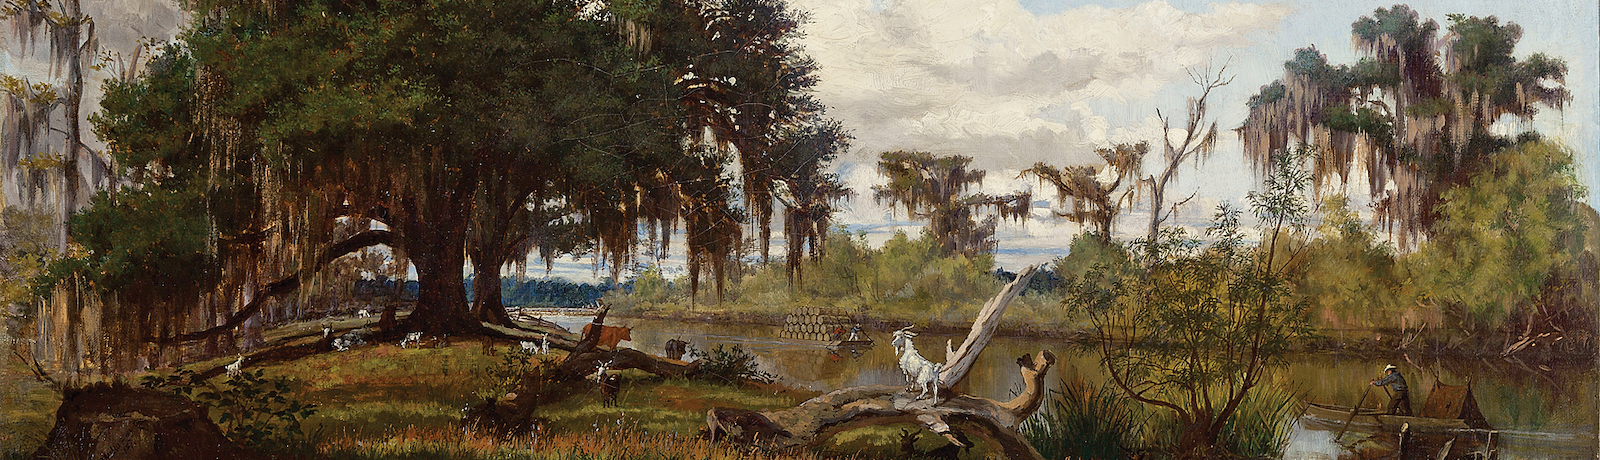 Nineteenth-century artists drawn to Louisiana's swamps, bayous, and riverways redefined the genre of landscape painting.